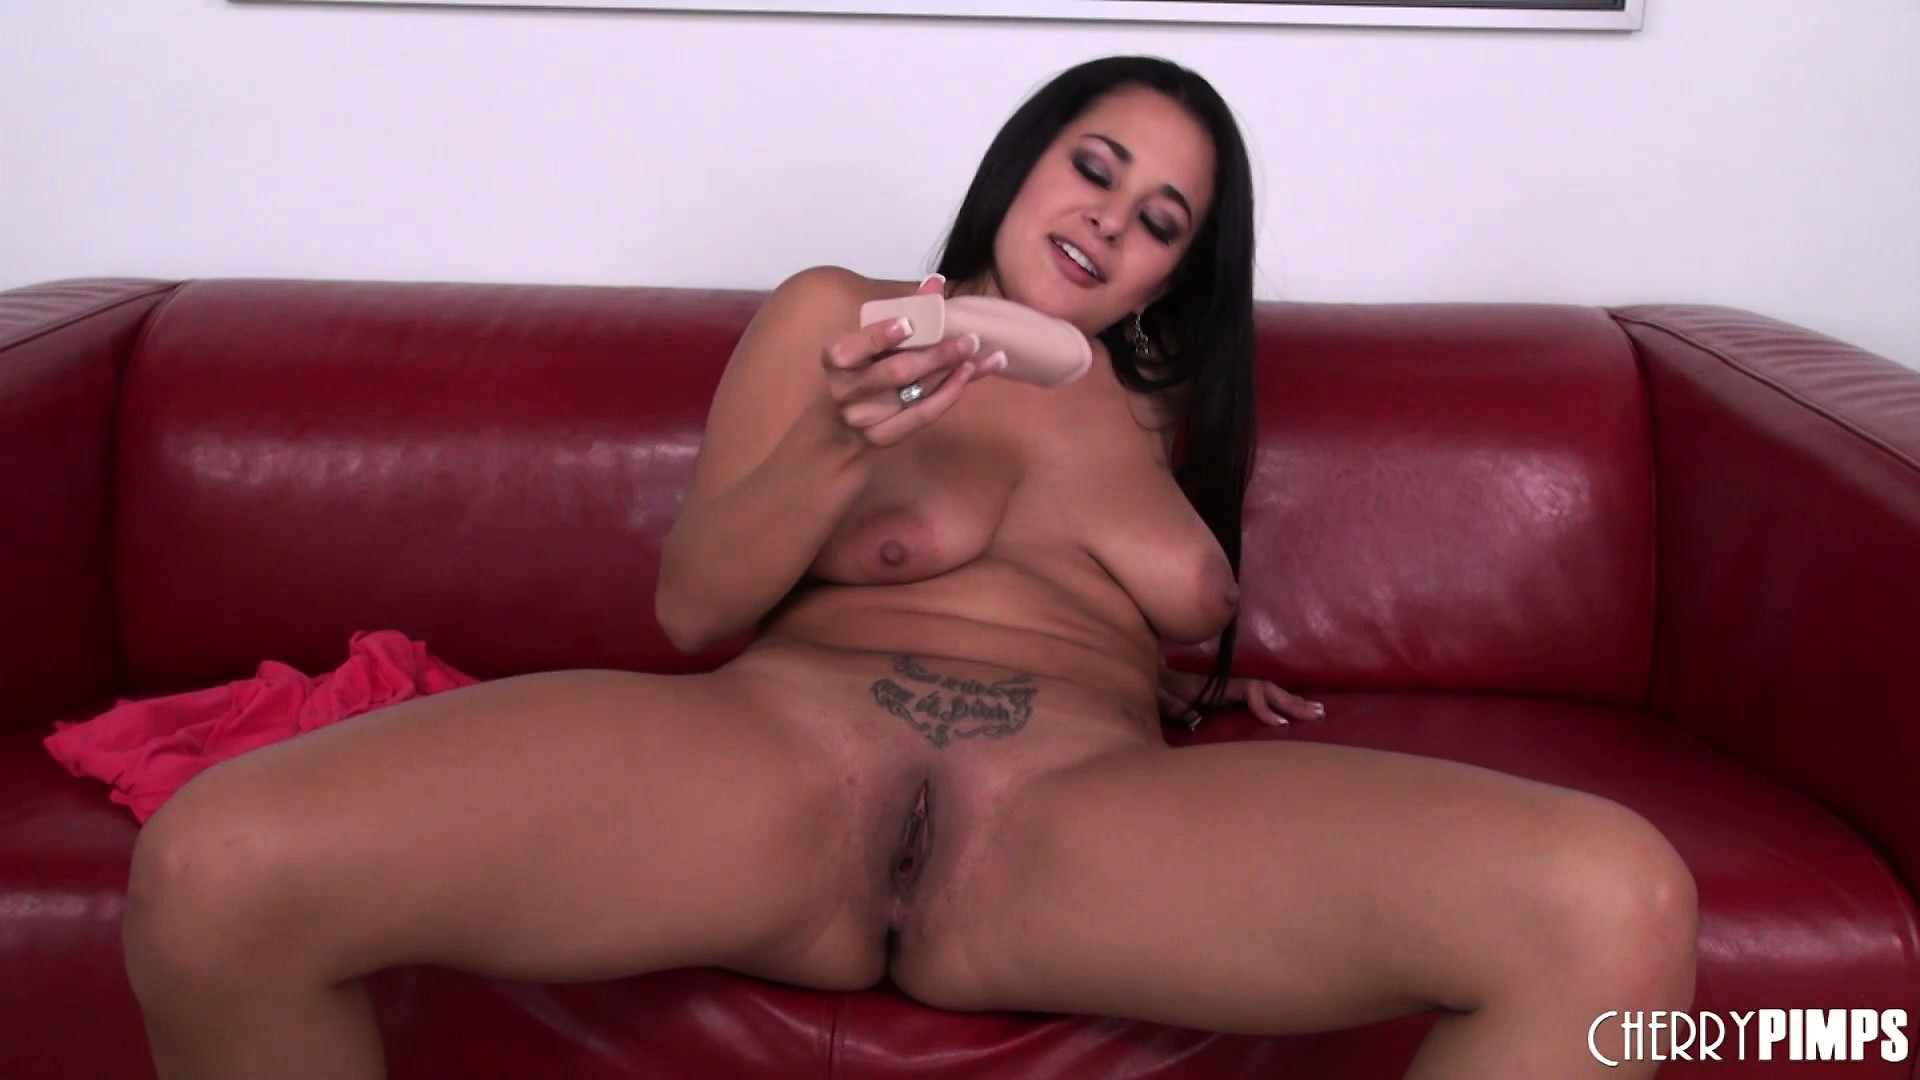 Porn Tube of Penelope Piper, A Sexy Brunette With Big Boobs And A Lustful Ass, Is One Horny Babe